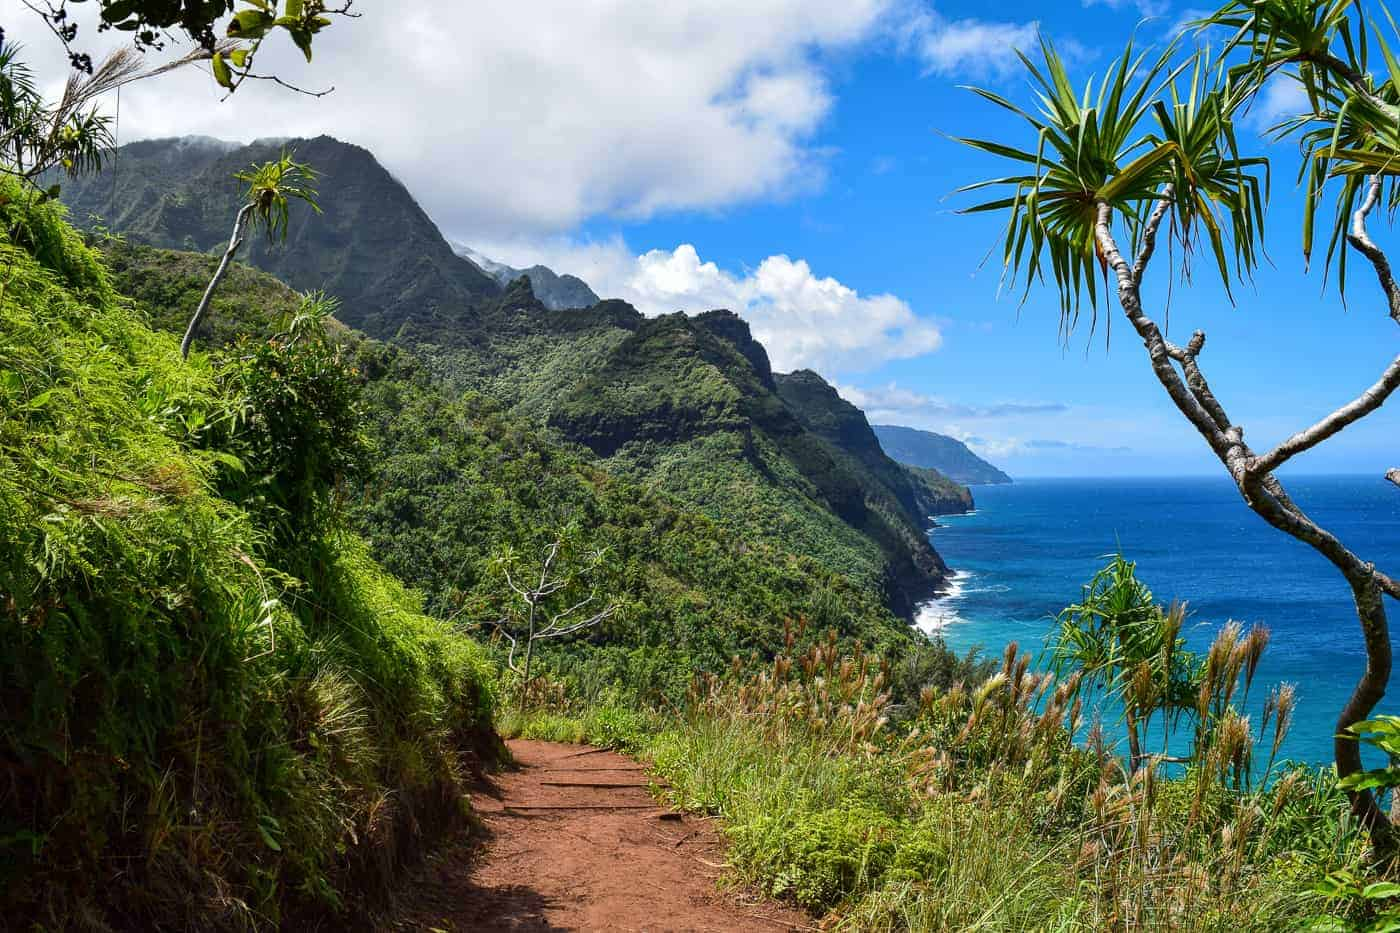 kauai itinerary travel guide 6